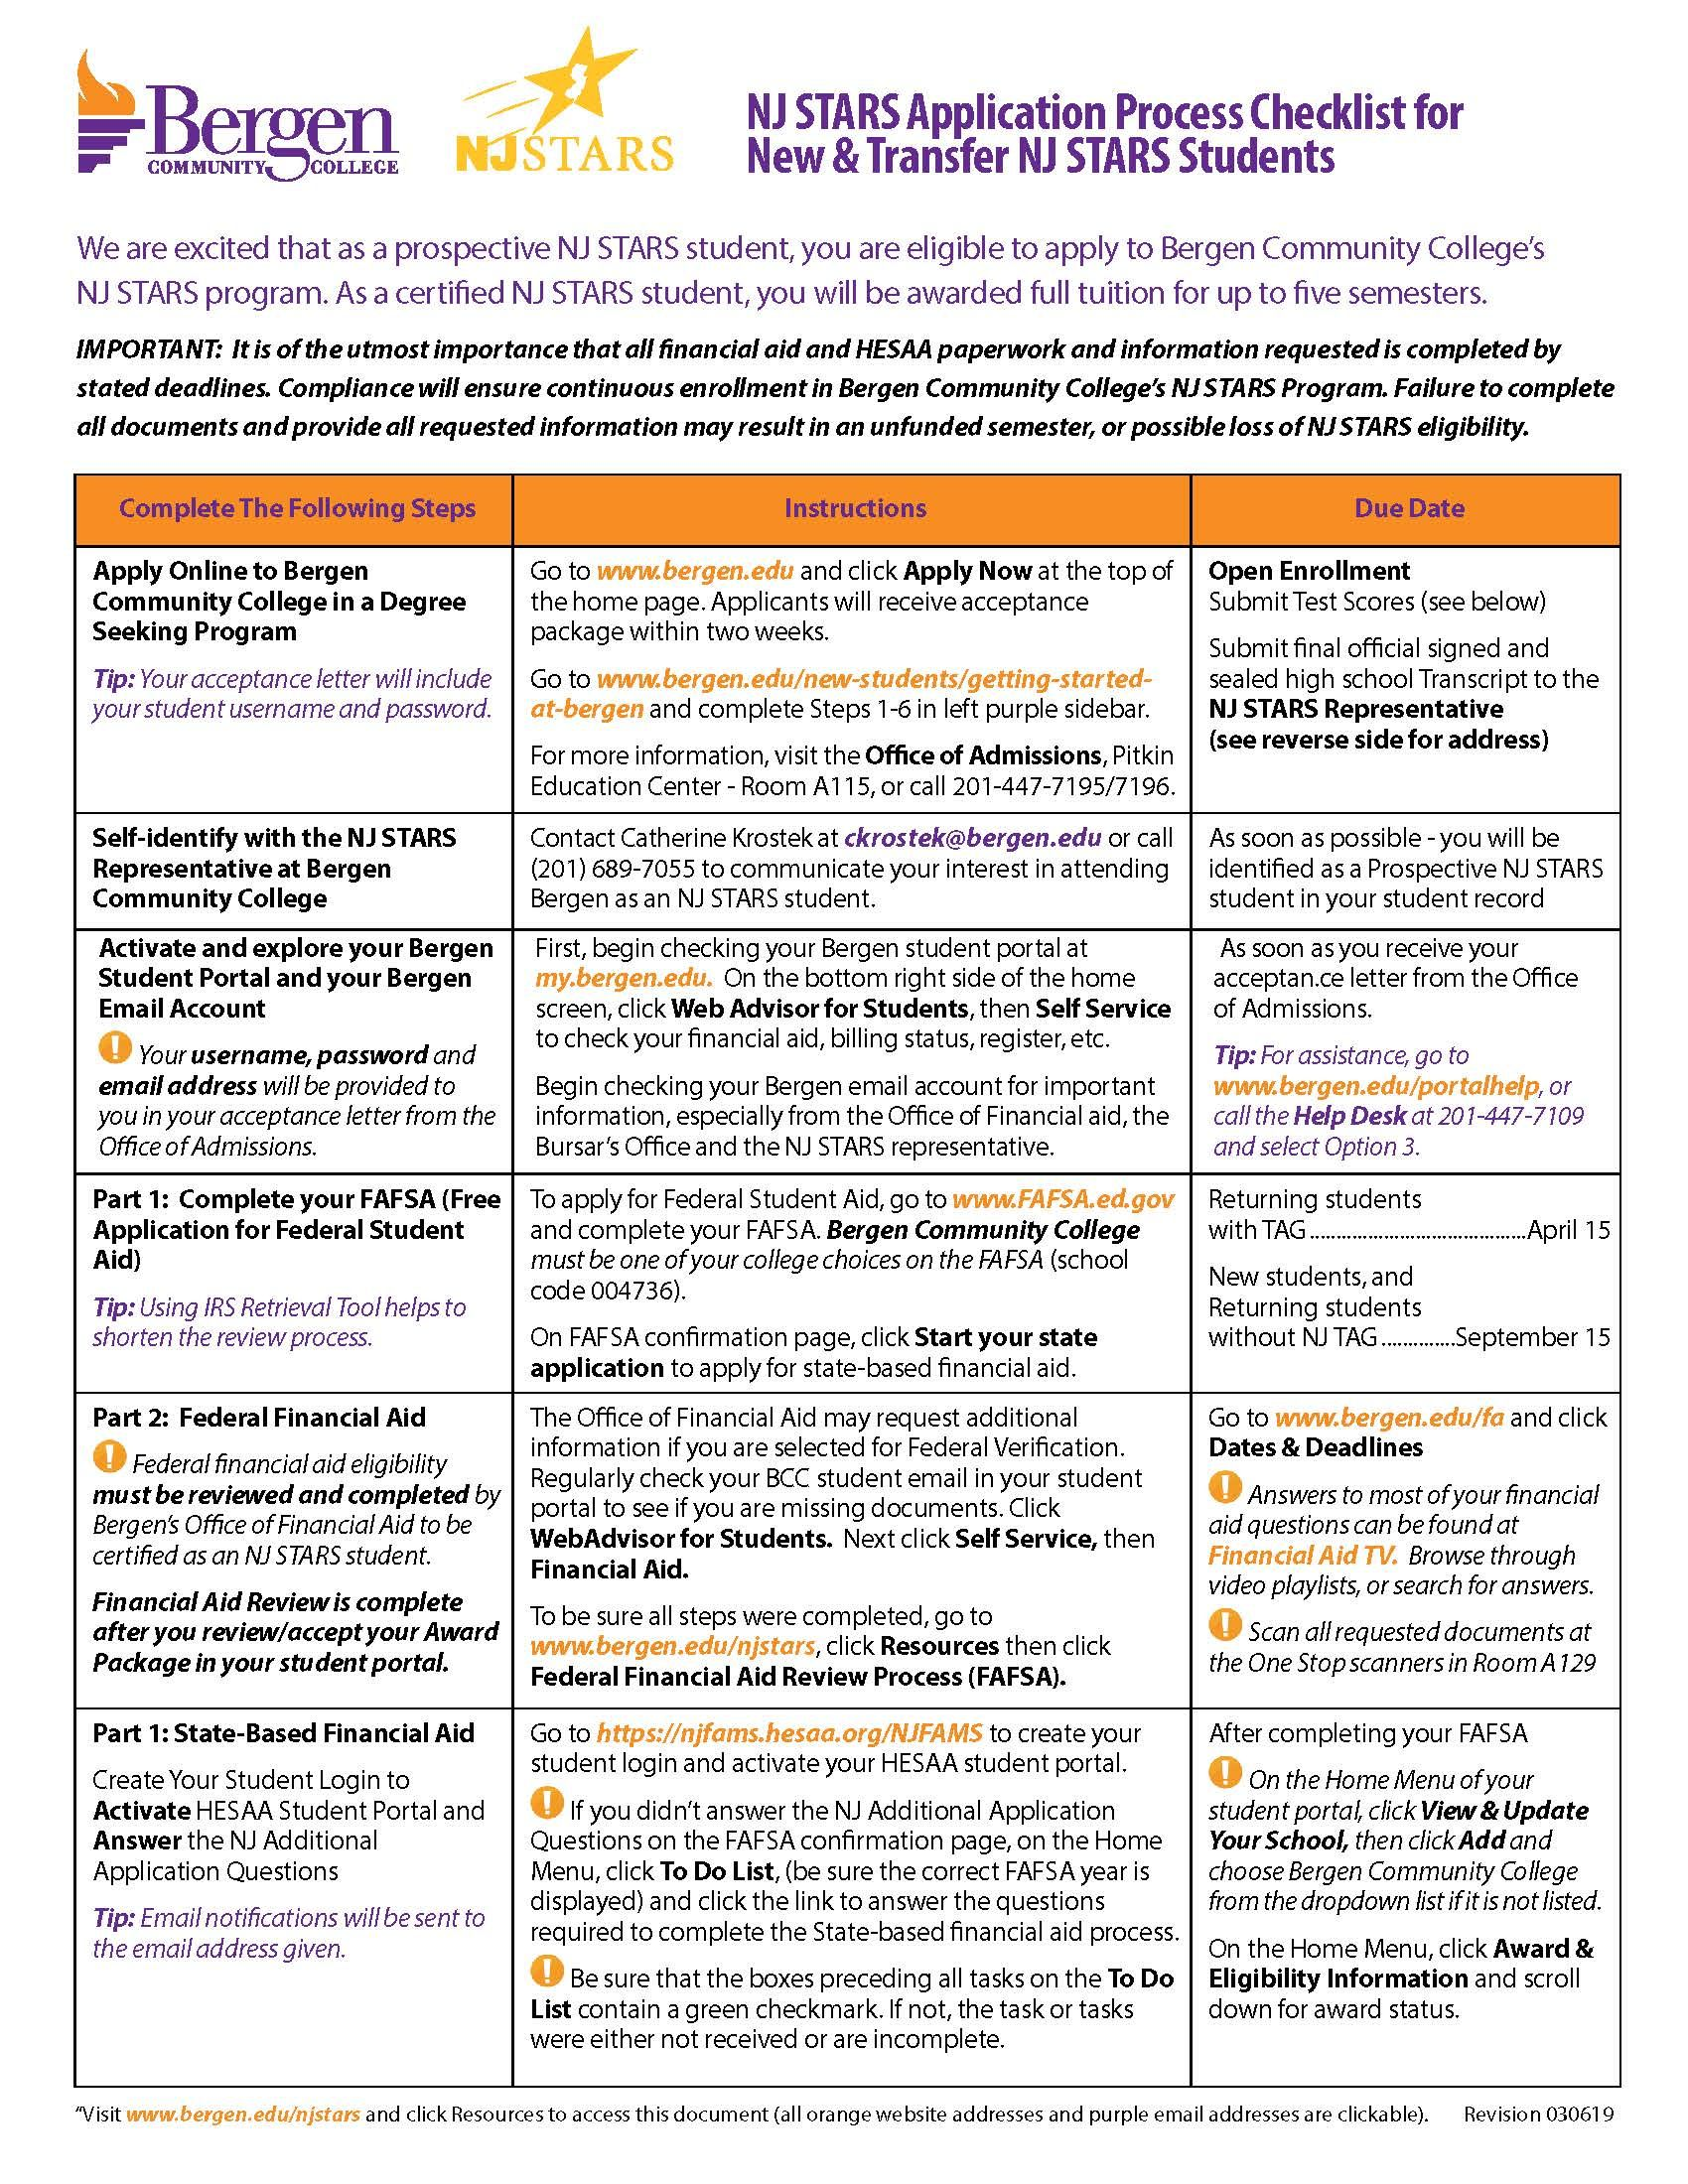 Checklist to help new students NJ STARS students at